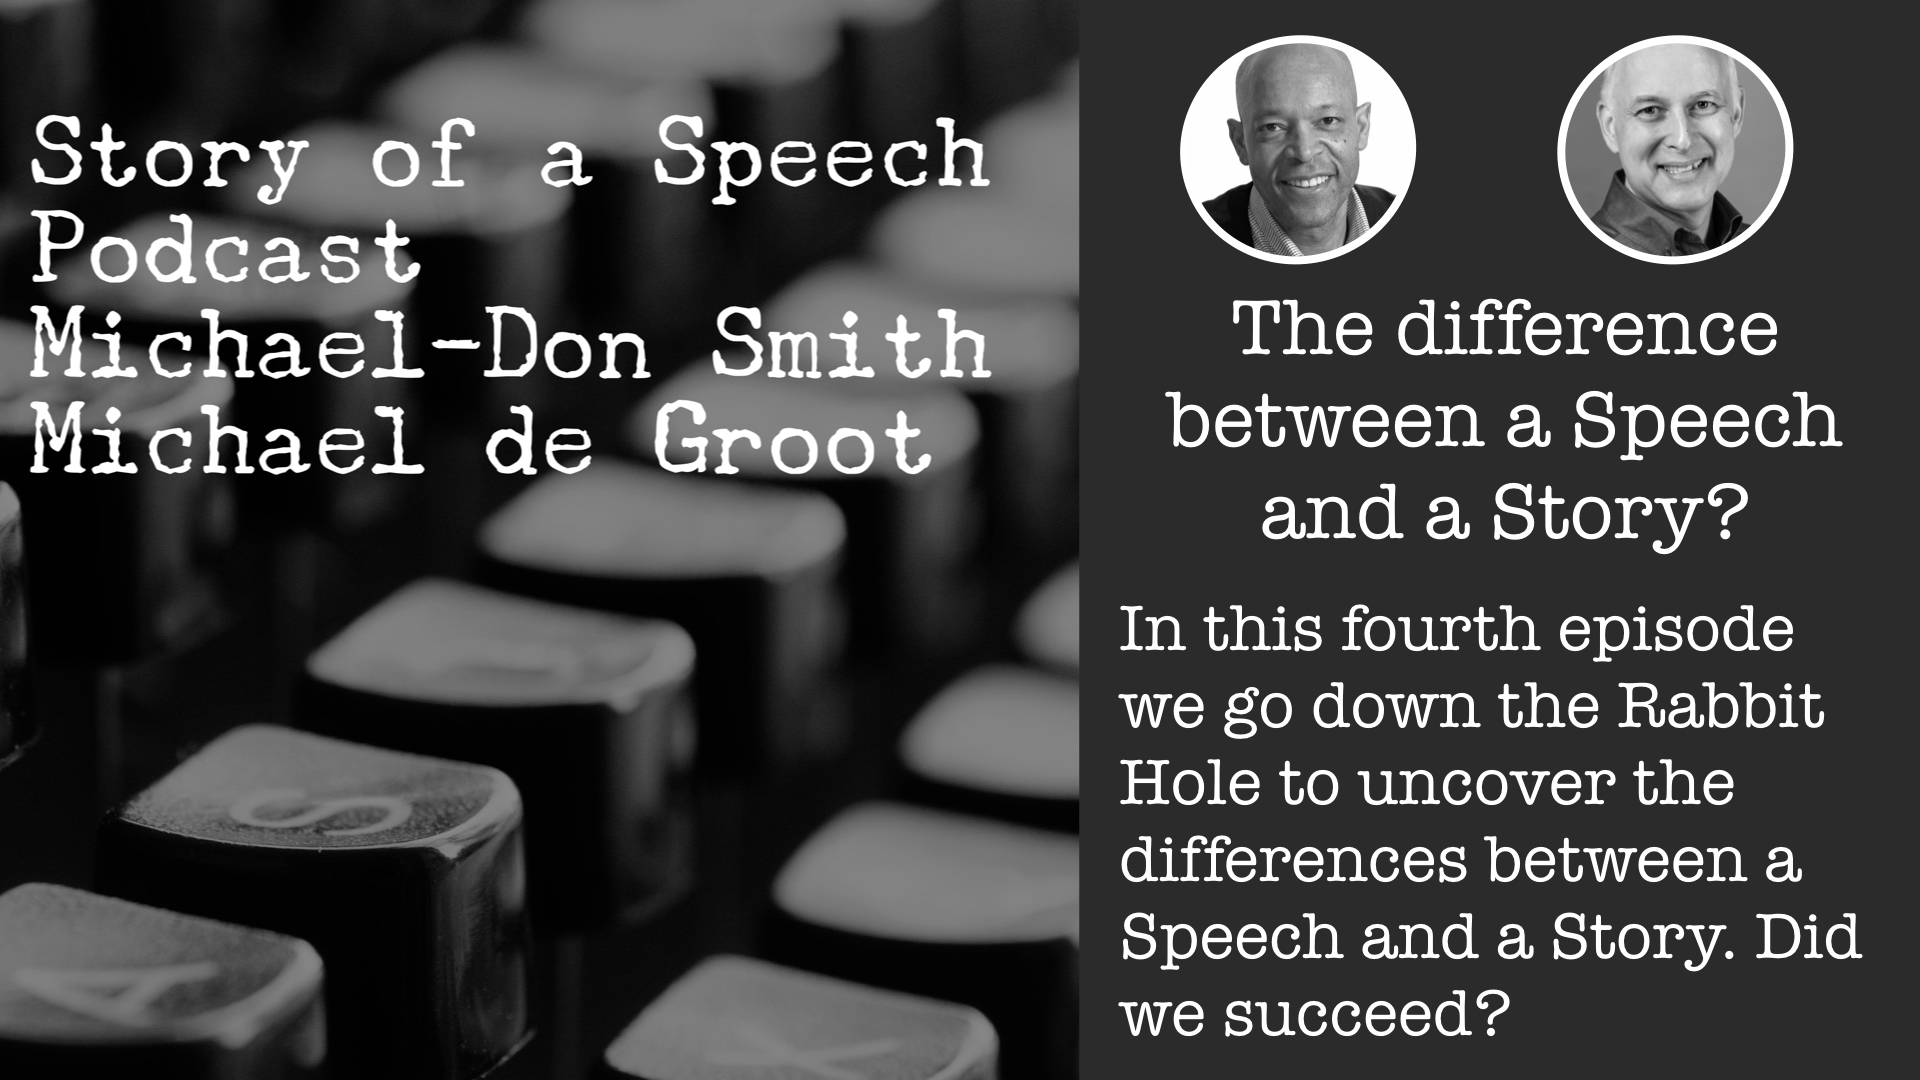 Story of a Speech Podcast - The difference.jpeg